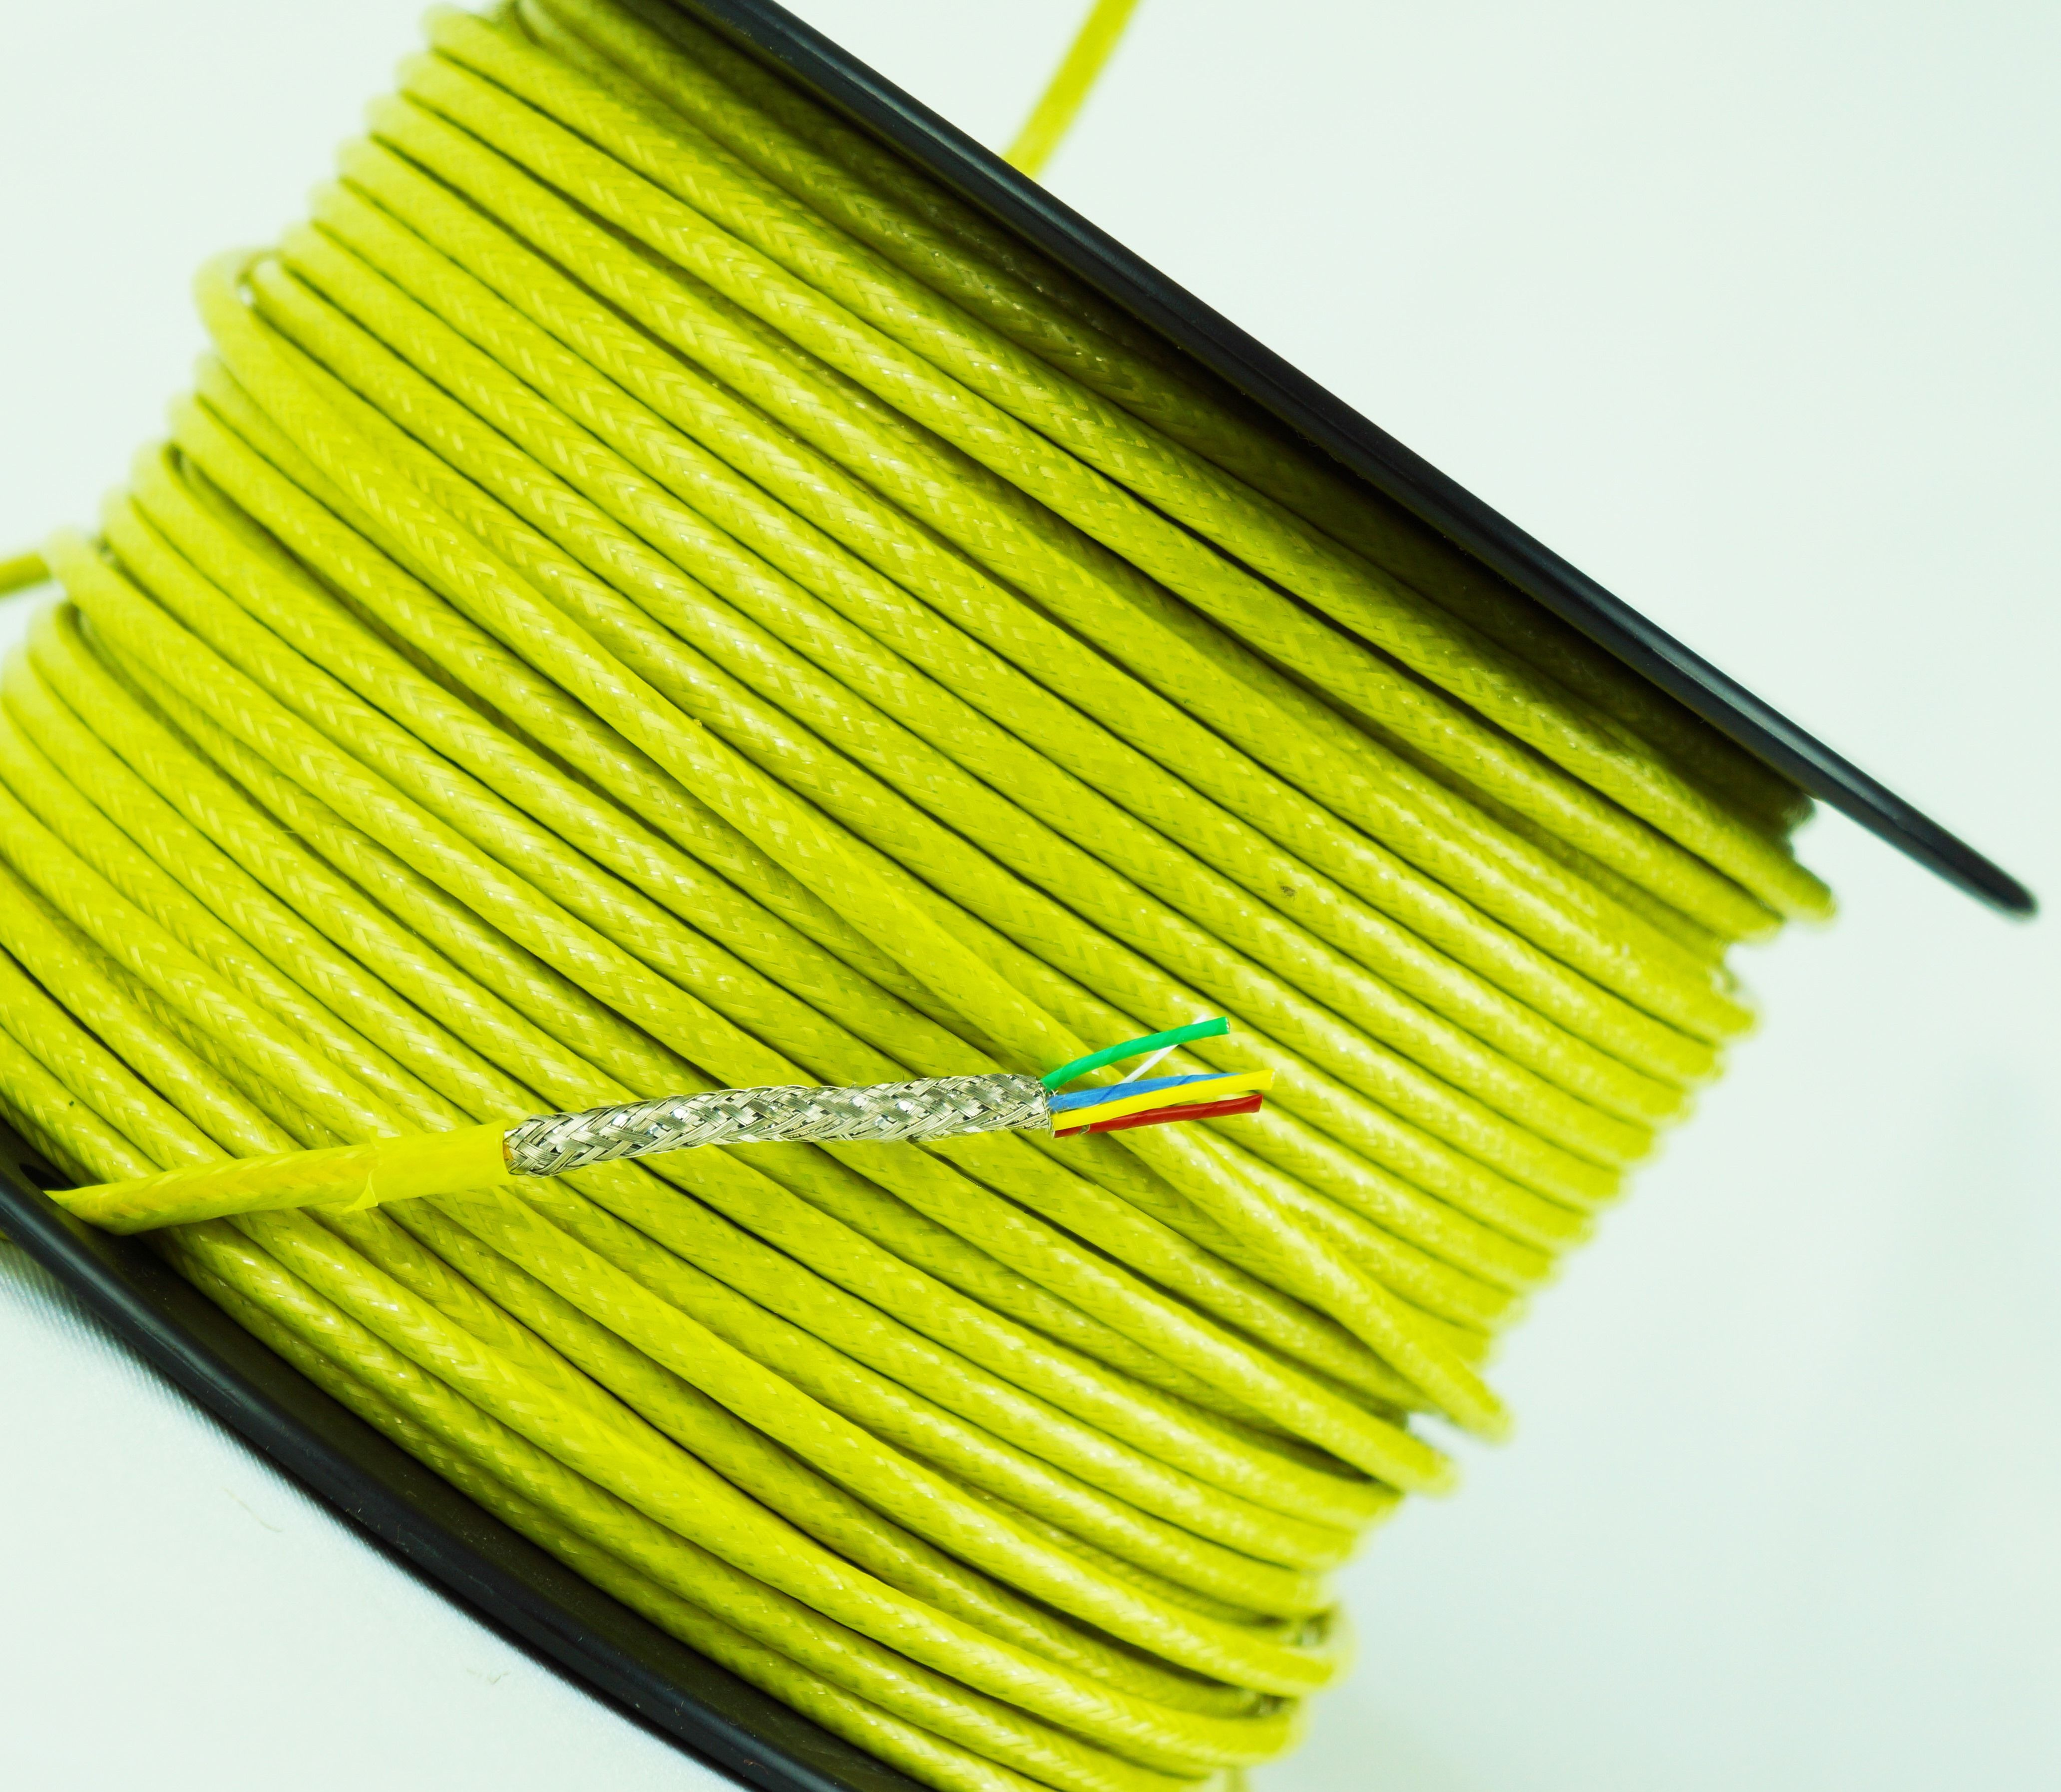 Mil-Spec and BMS Wire & Cable | WireMasters stock a wide selection ...